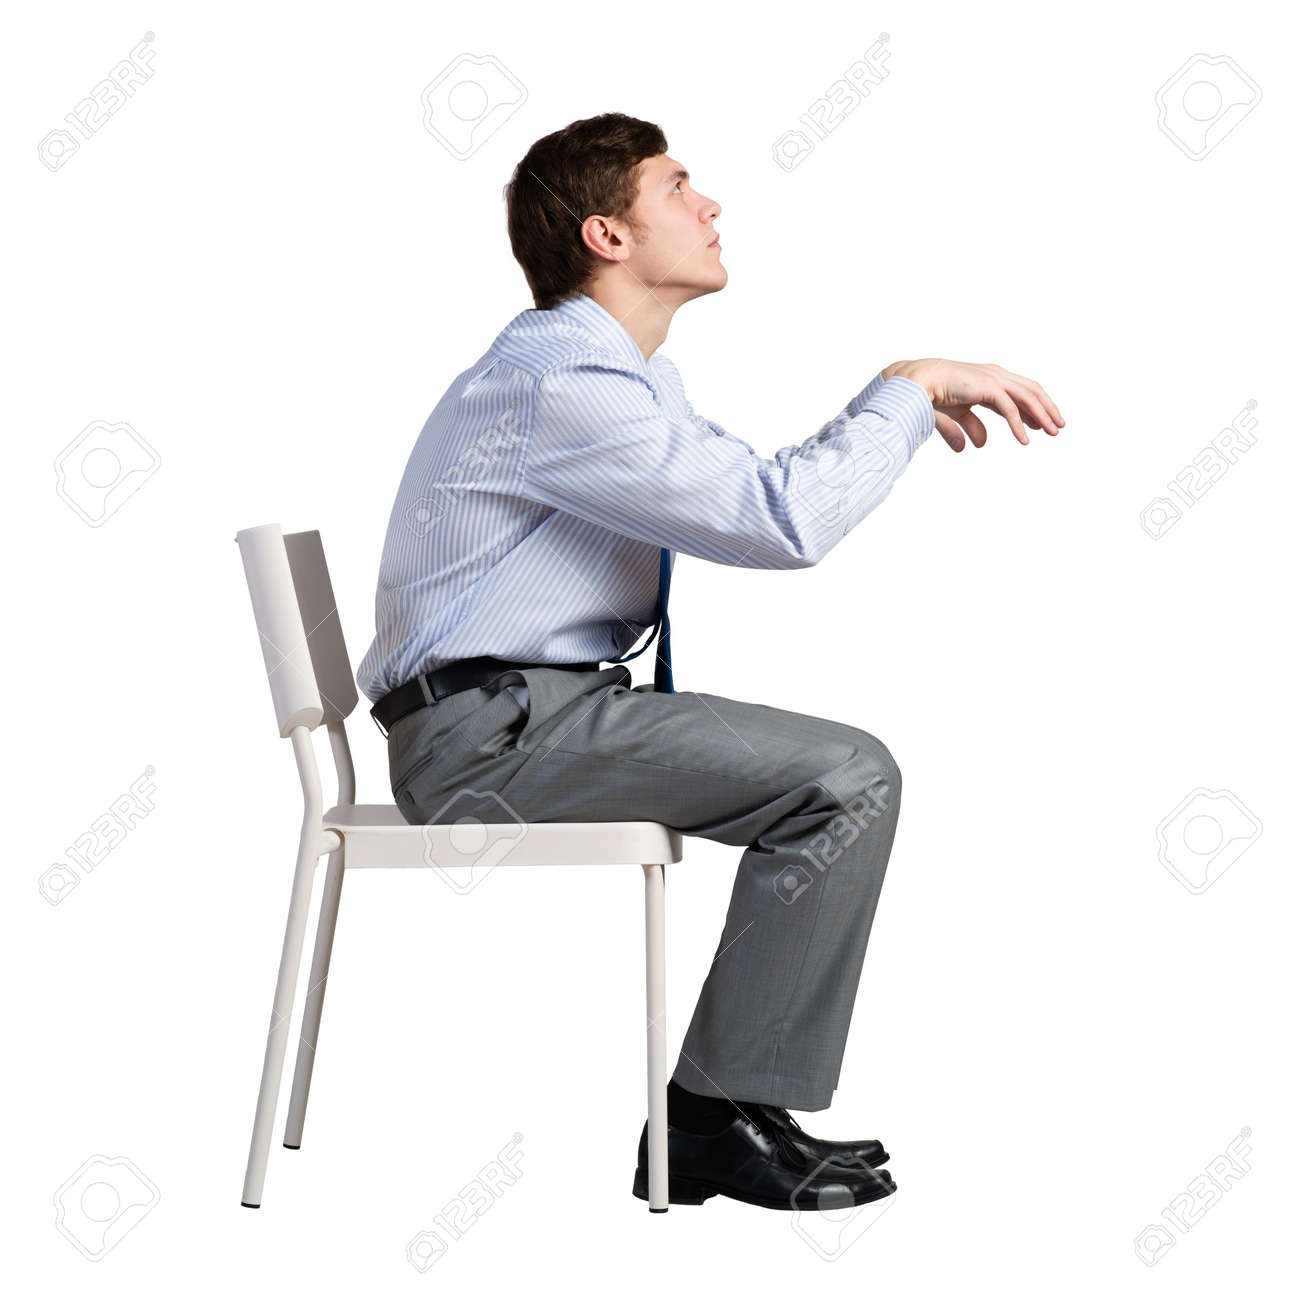 businessman sits on a chair, plays an imaginary piano - 167234795